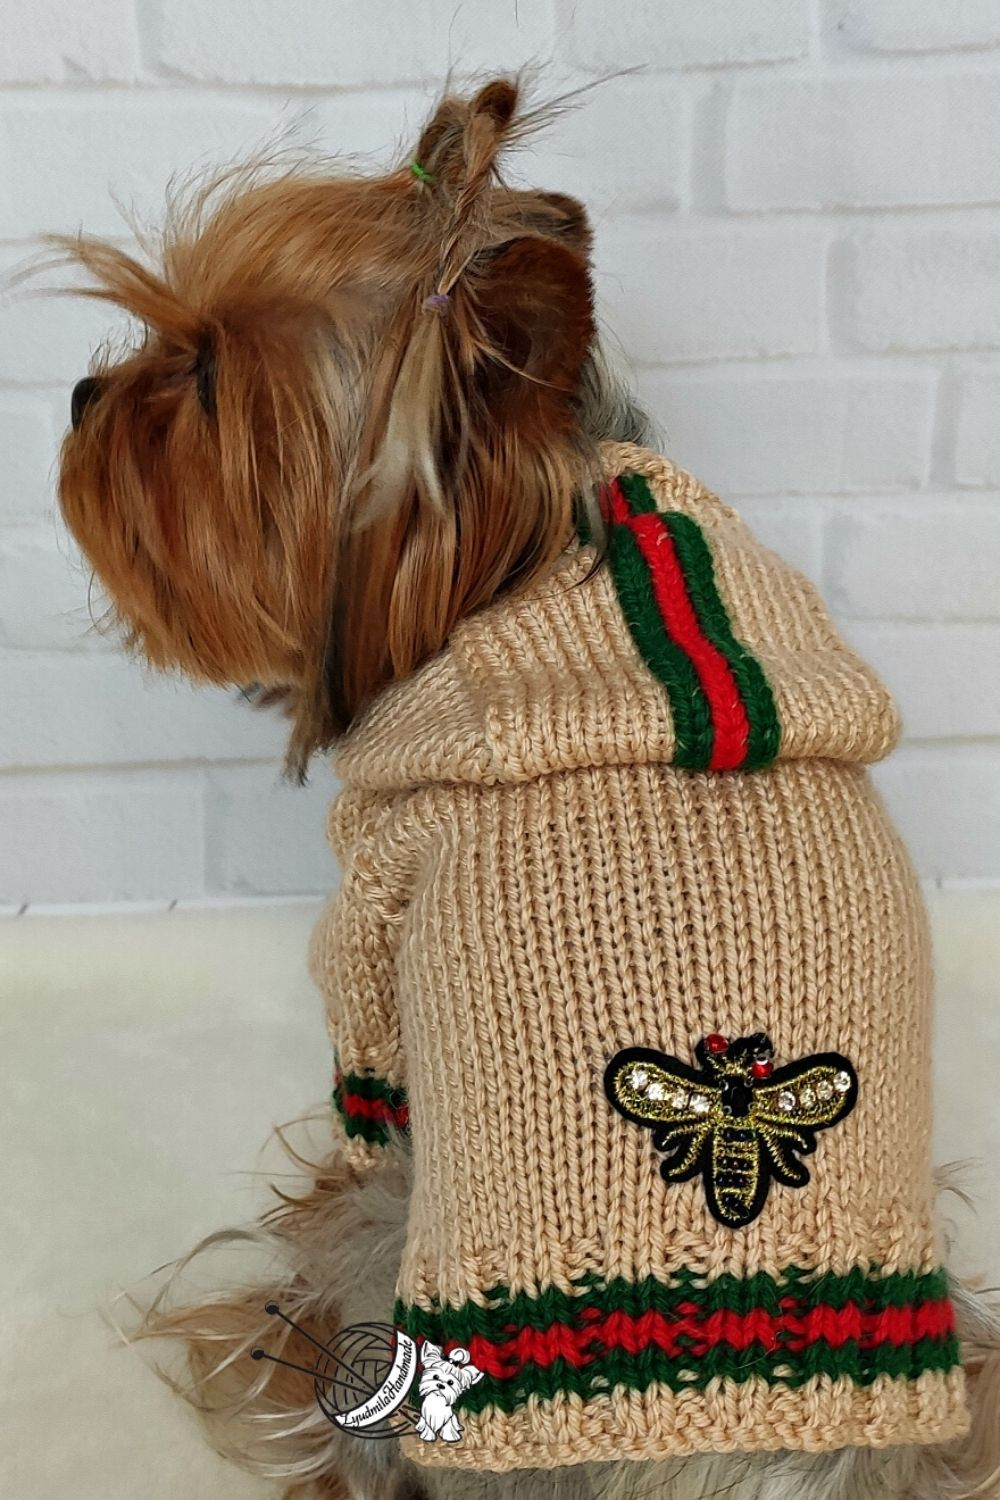 yorkie puppy clothes dog coat pet costume dresses for dogs girl dog sweater pet clothes for dogs dog sweater small dog winter clothes